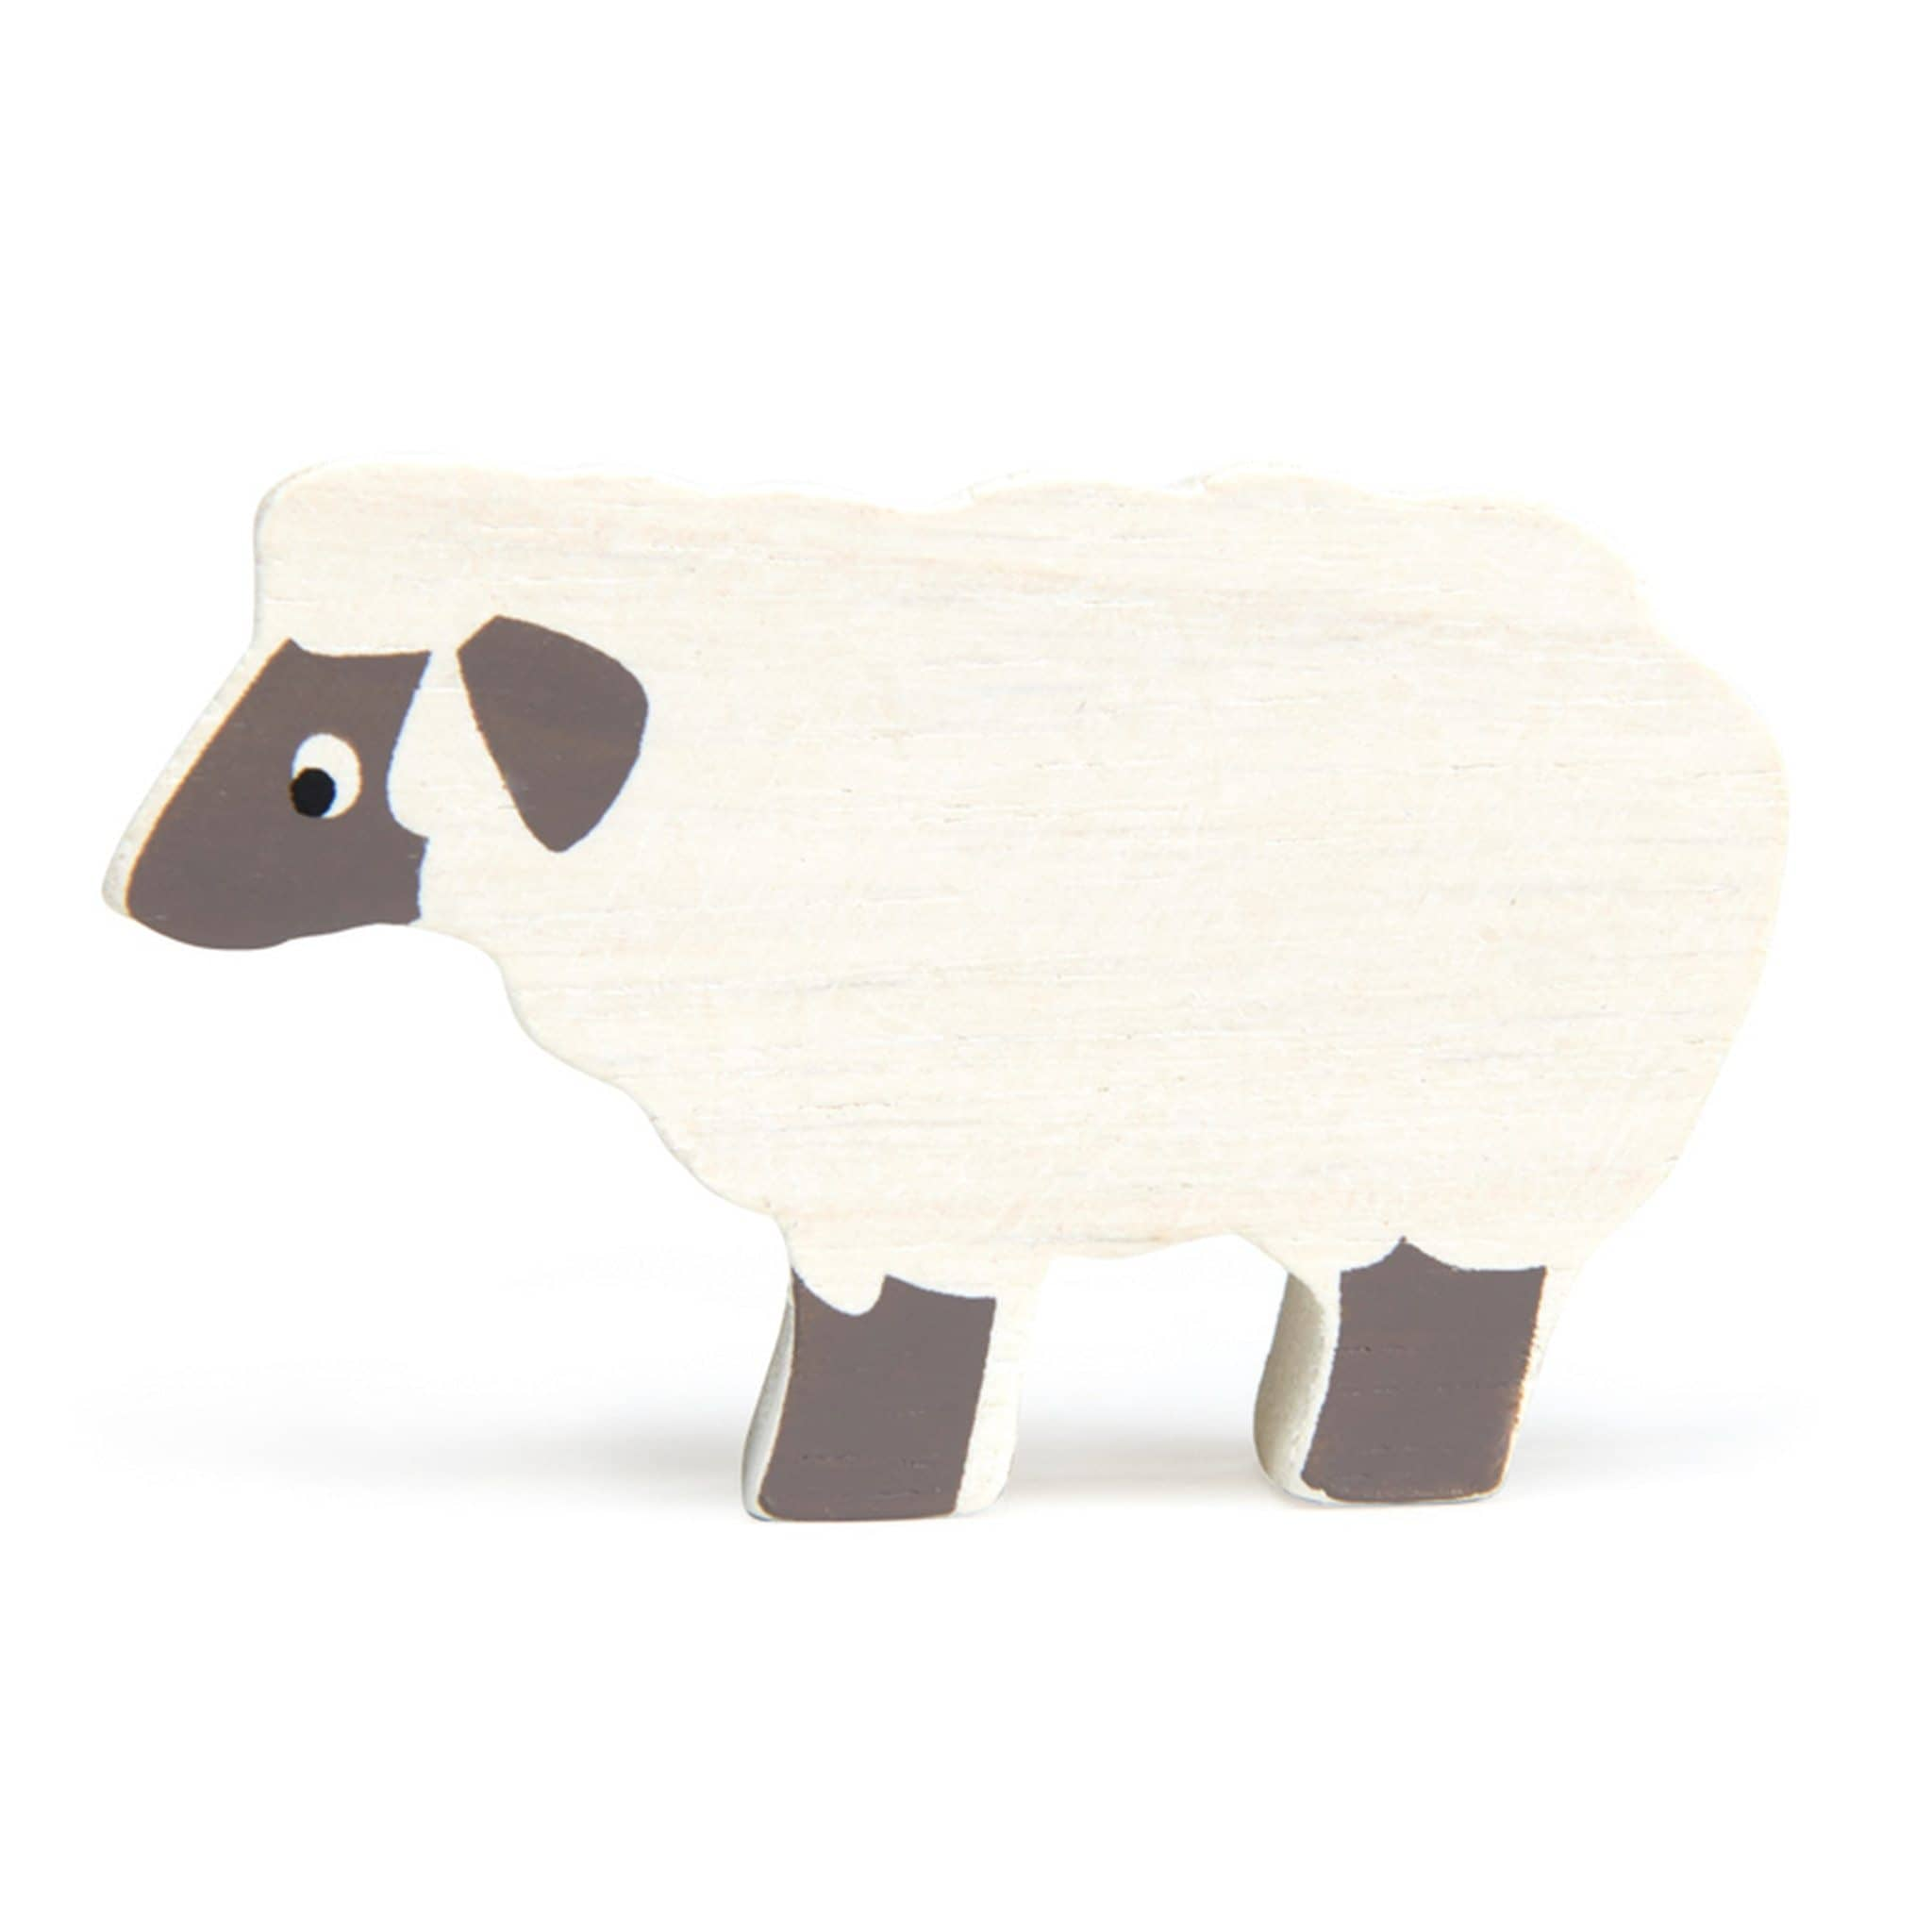 Sheep Wooden Figure